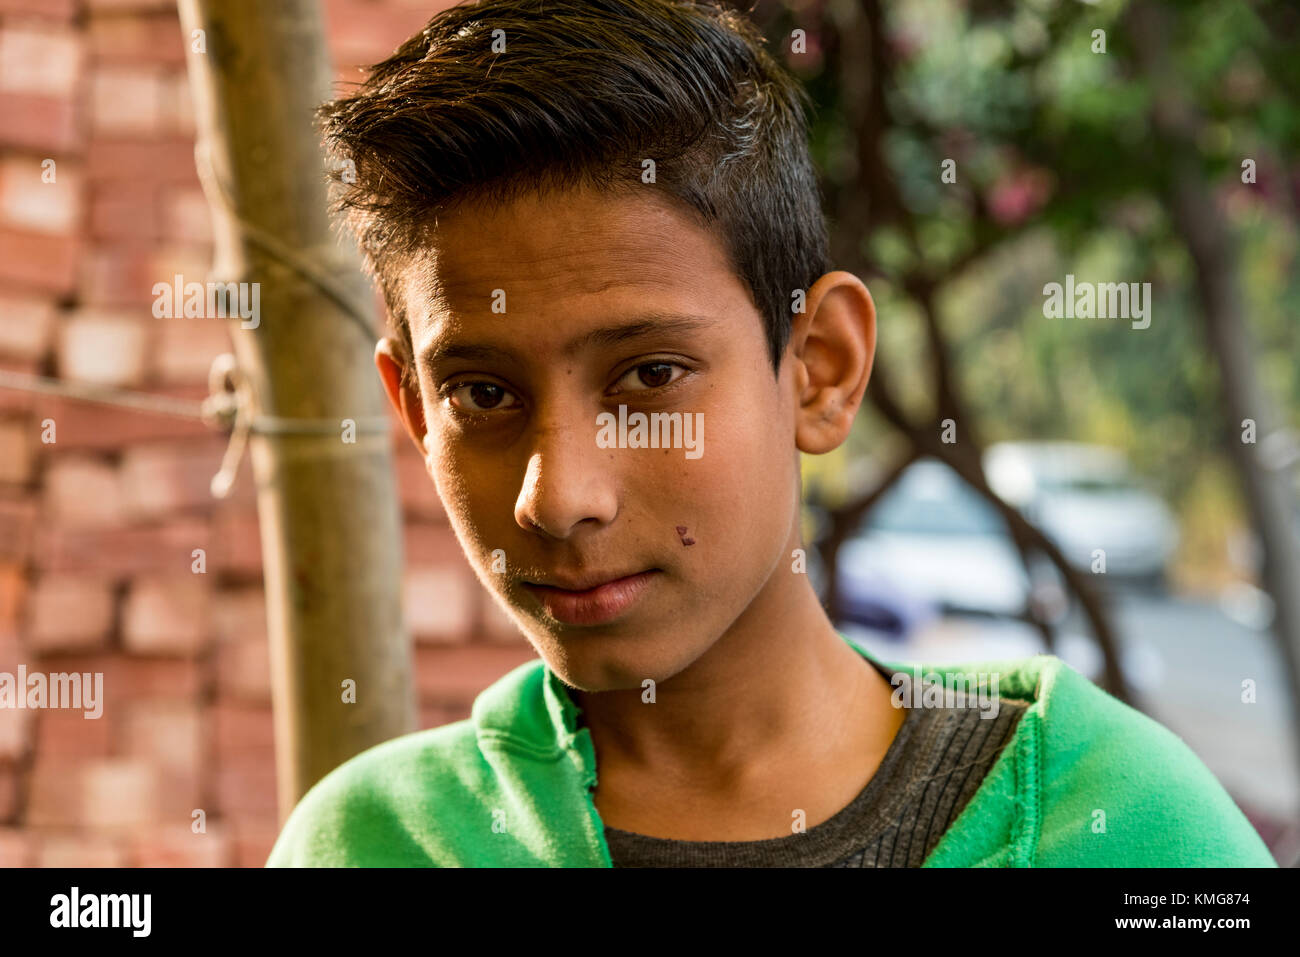 Portrait of a poor Indian boy. - Stock Image